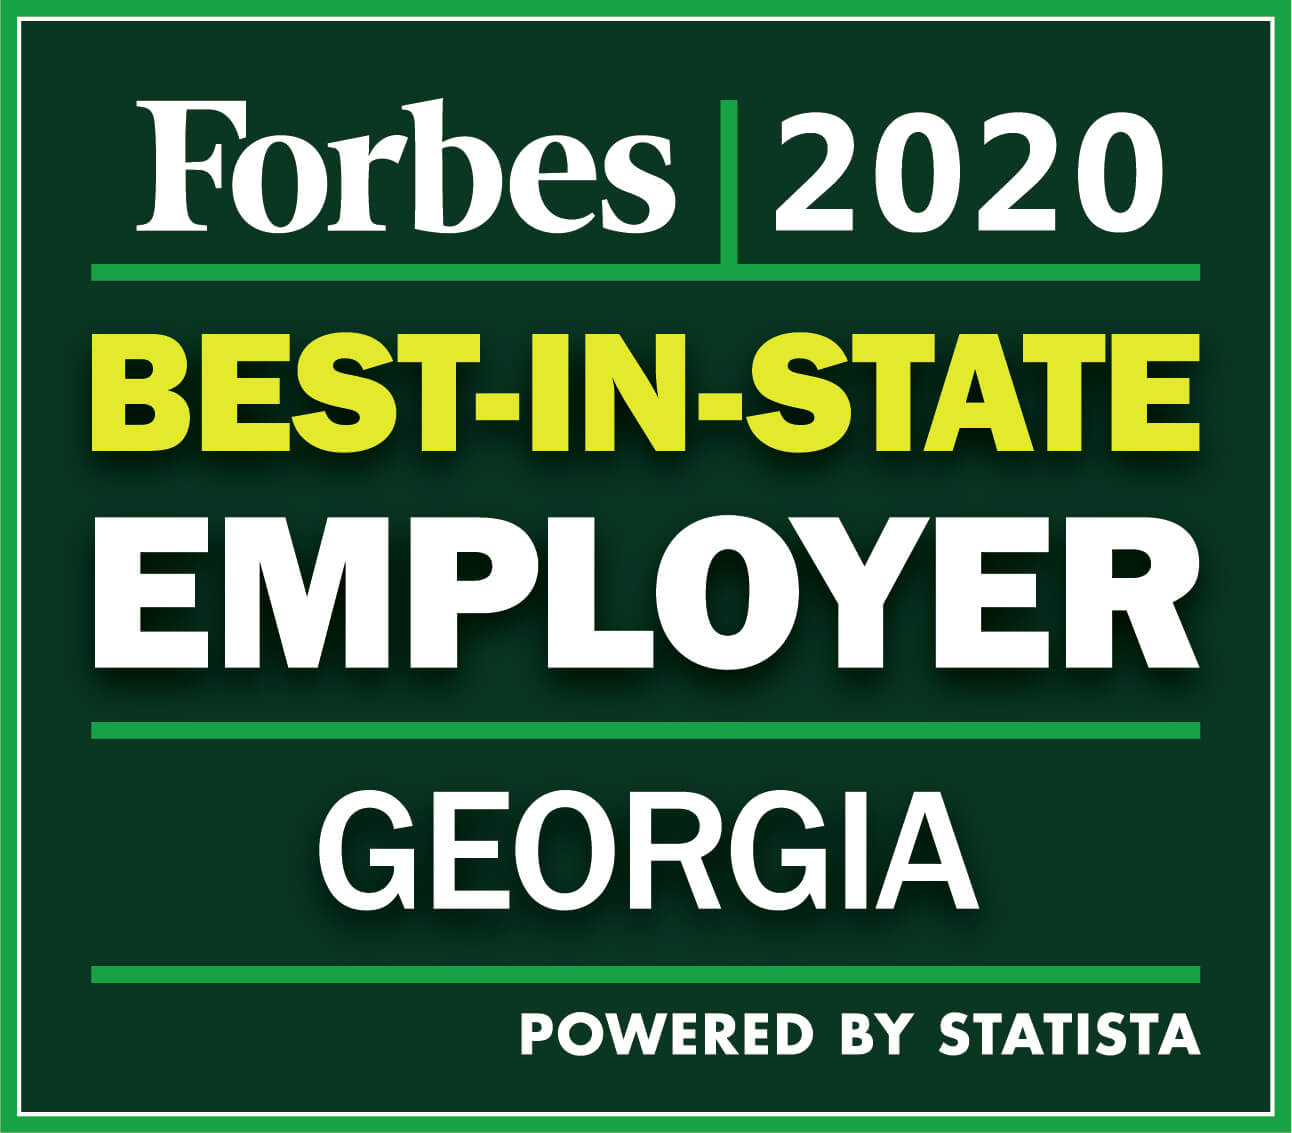 Forbes 2020 | Best-In-State Employer | Georgia